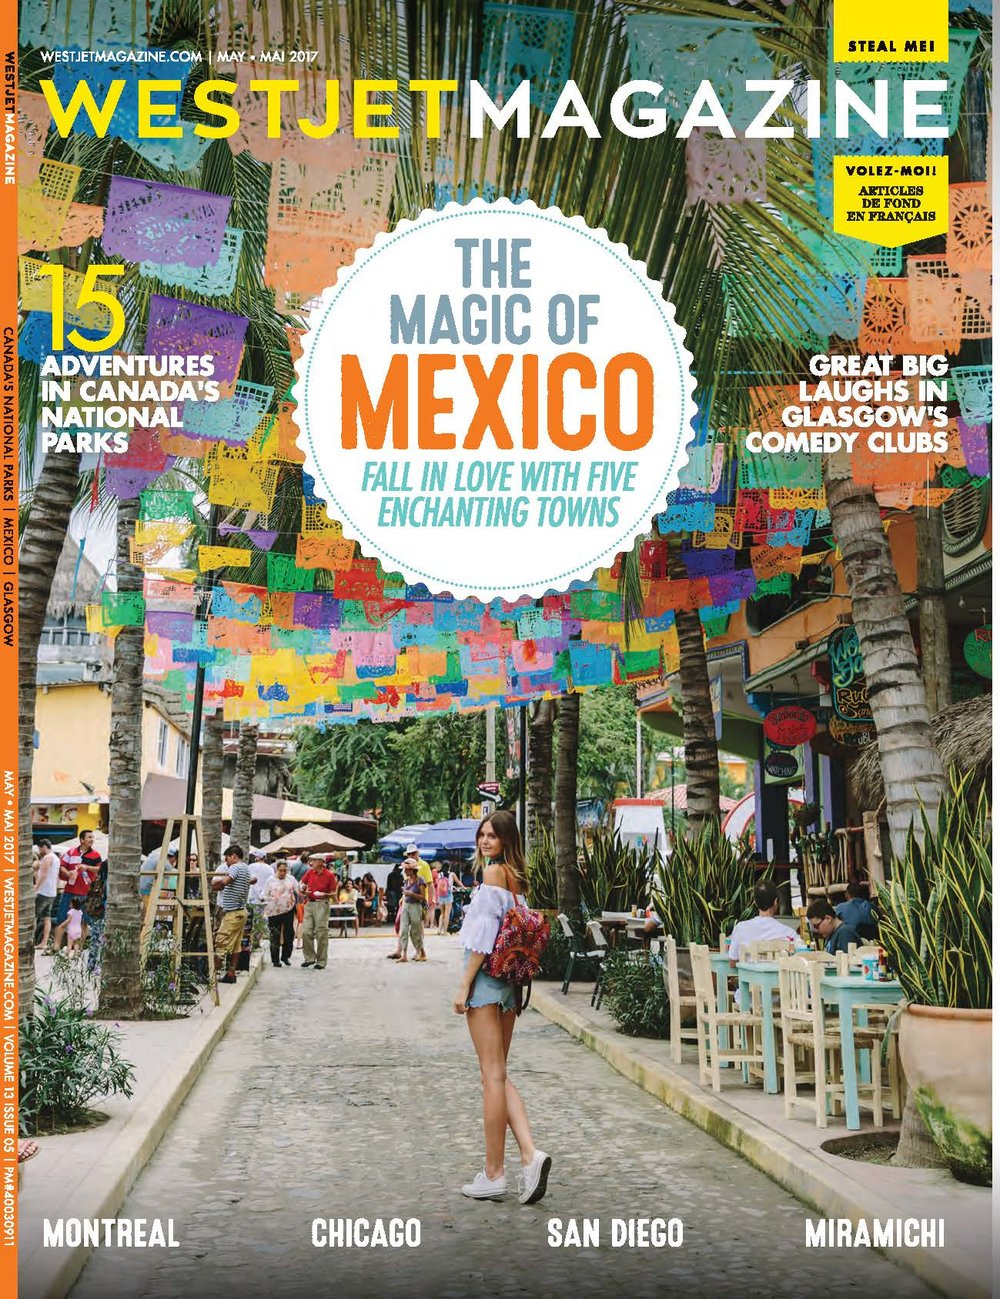 WestJet Magazine May 2017_Page_1.jpg